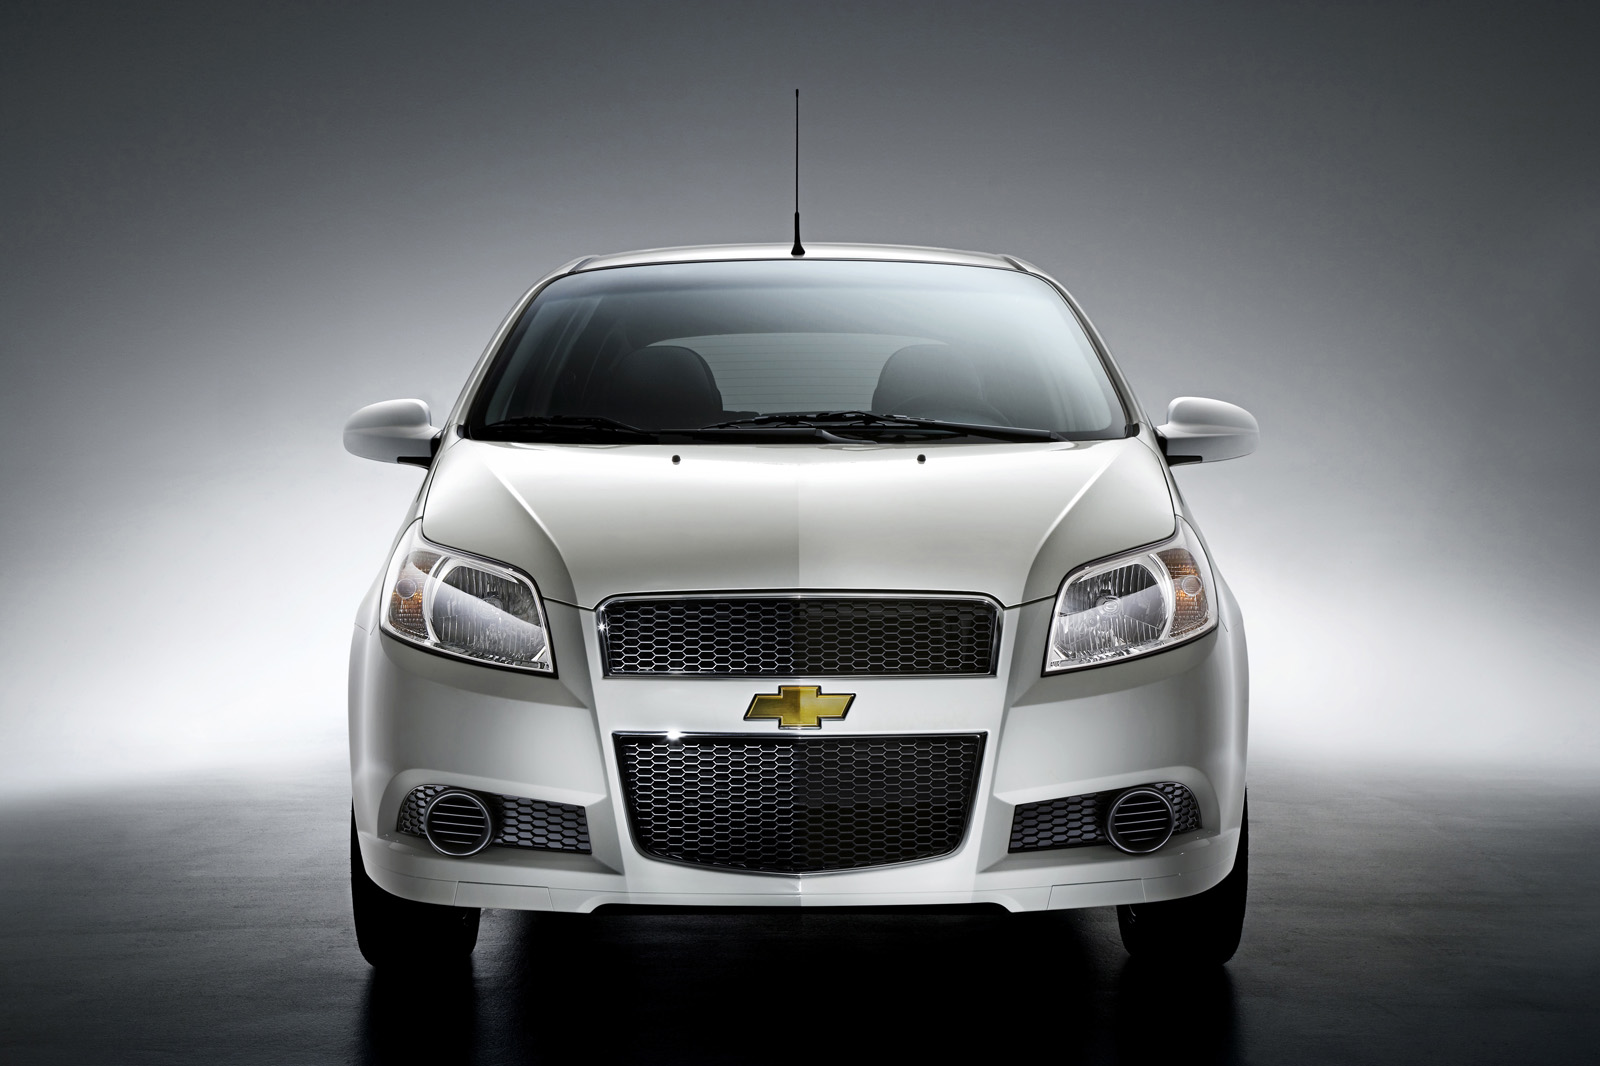 2009 Chevrolet Aveo / Aveo5 – Review – Car and Driver